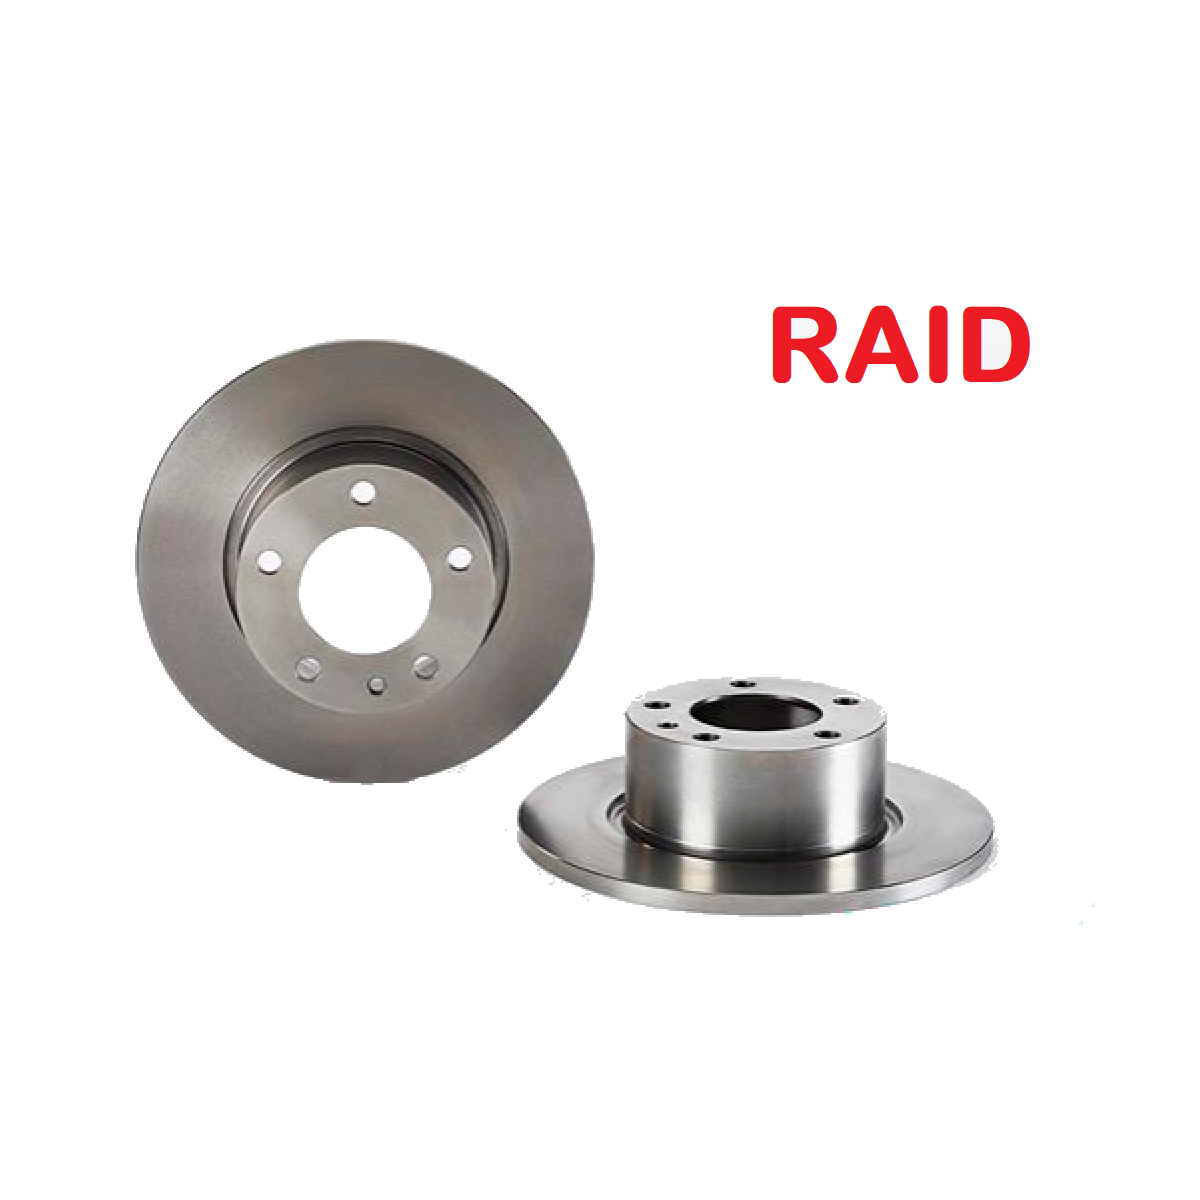 PAIR OF FRONT BRAKE DISCS BMW 5 RAID FOR 34111151632